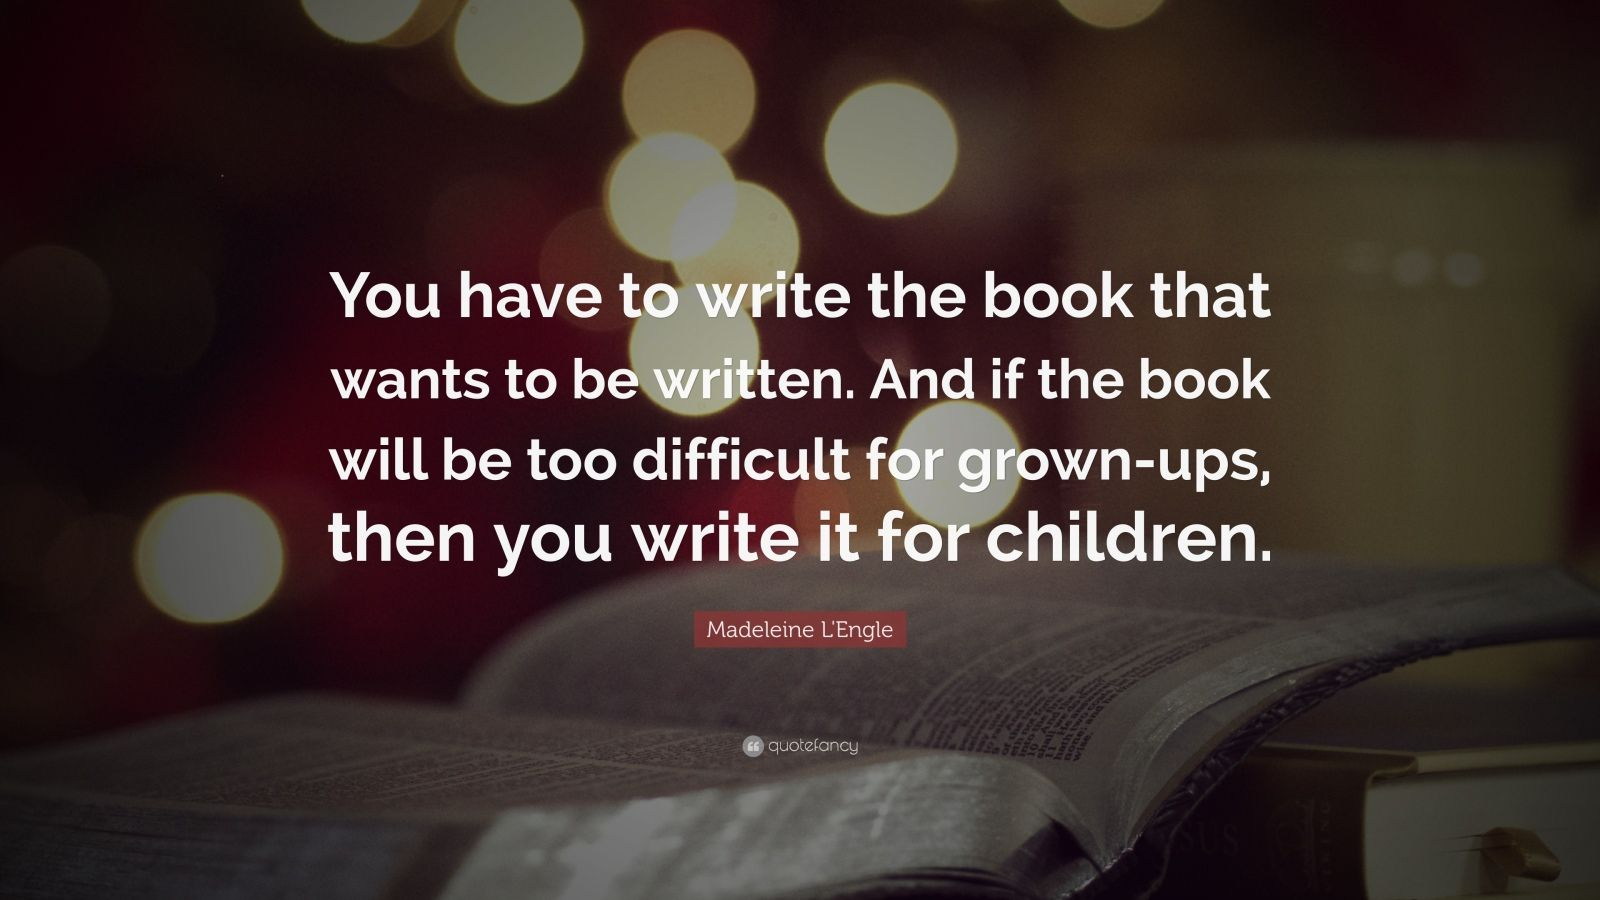 """Madeleine L'Engle Quote: """"You have to write the book that wants to be written. And if the book will be too difficult for grown-ups, then you write it for children."""""""